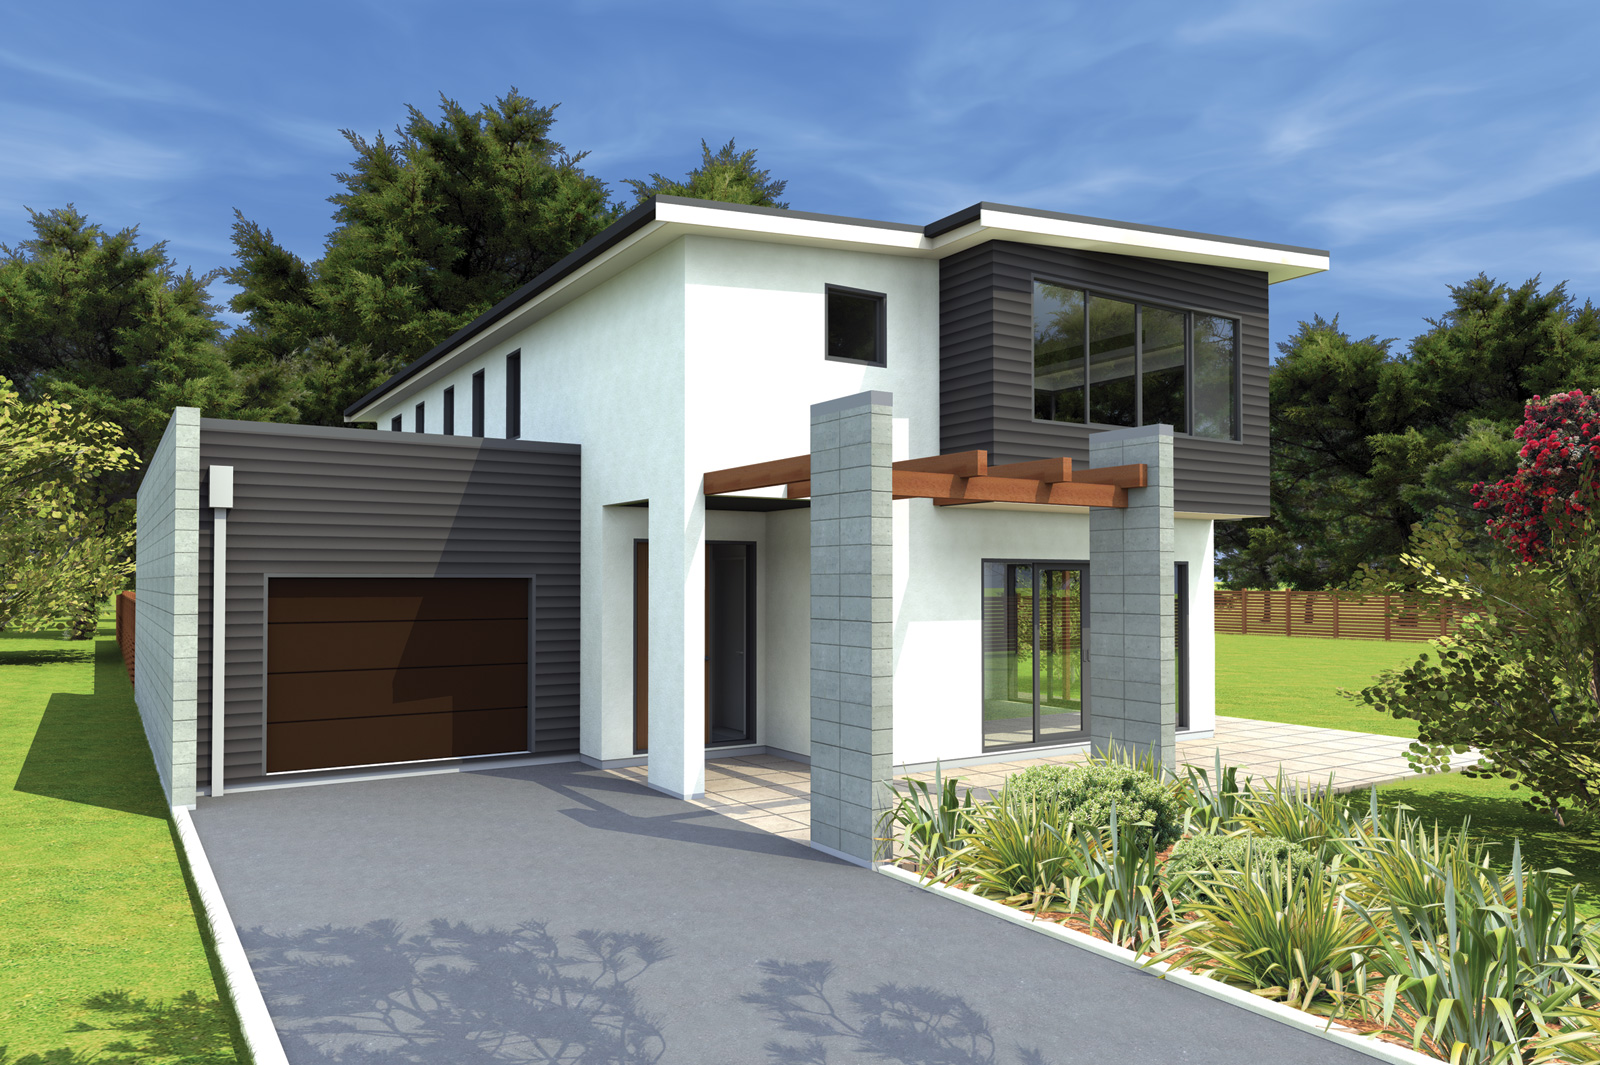 New home designs latest new modern homes designs new New home front design